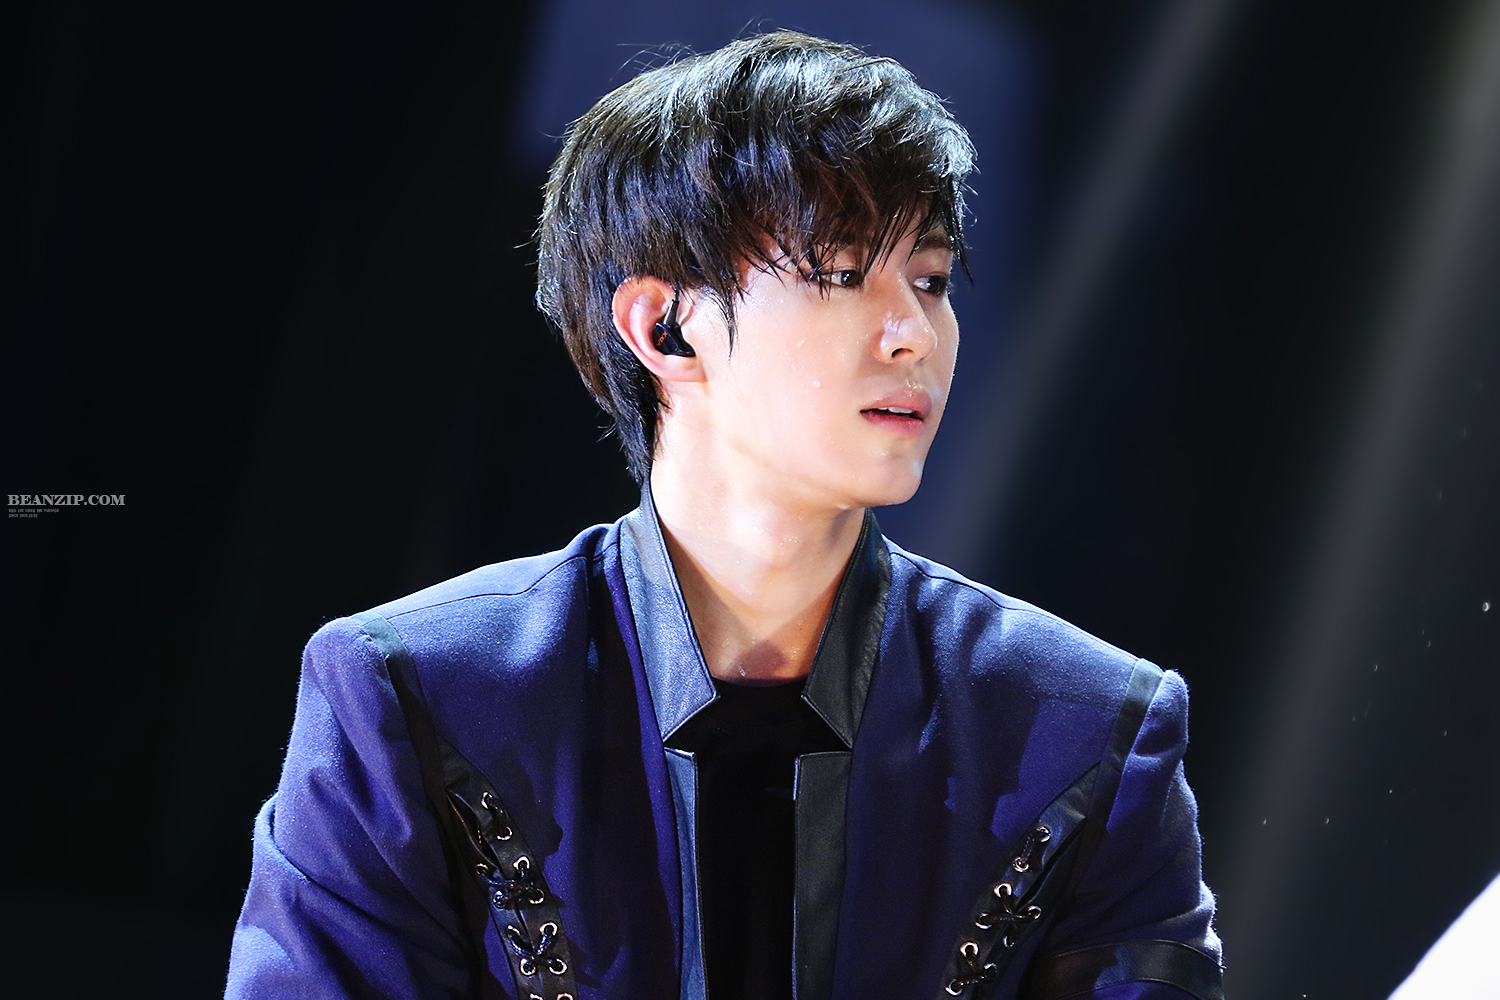 hongbin sweat 2